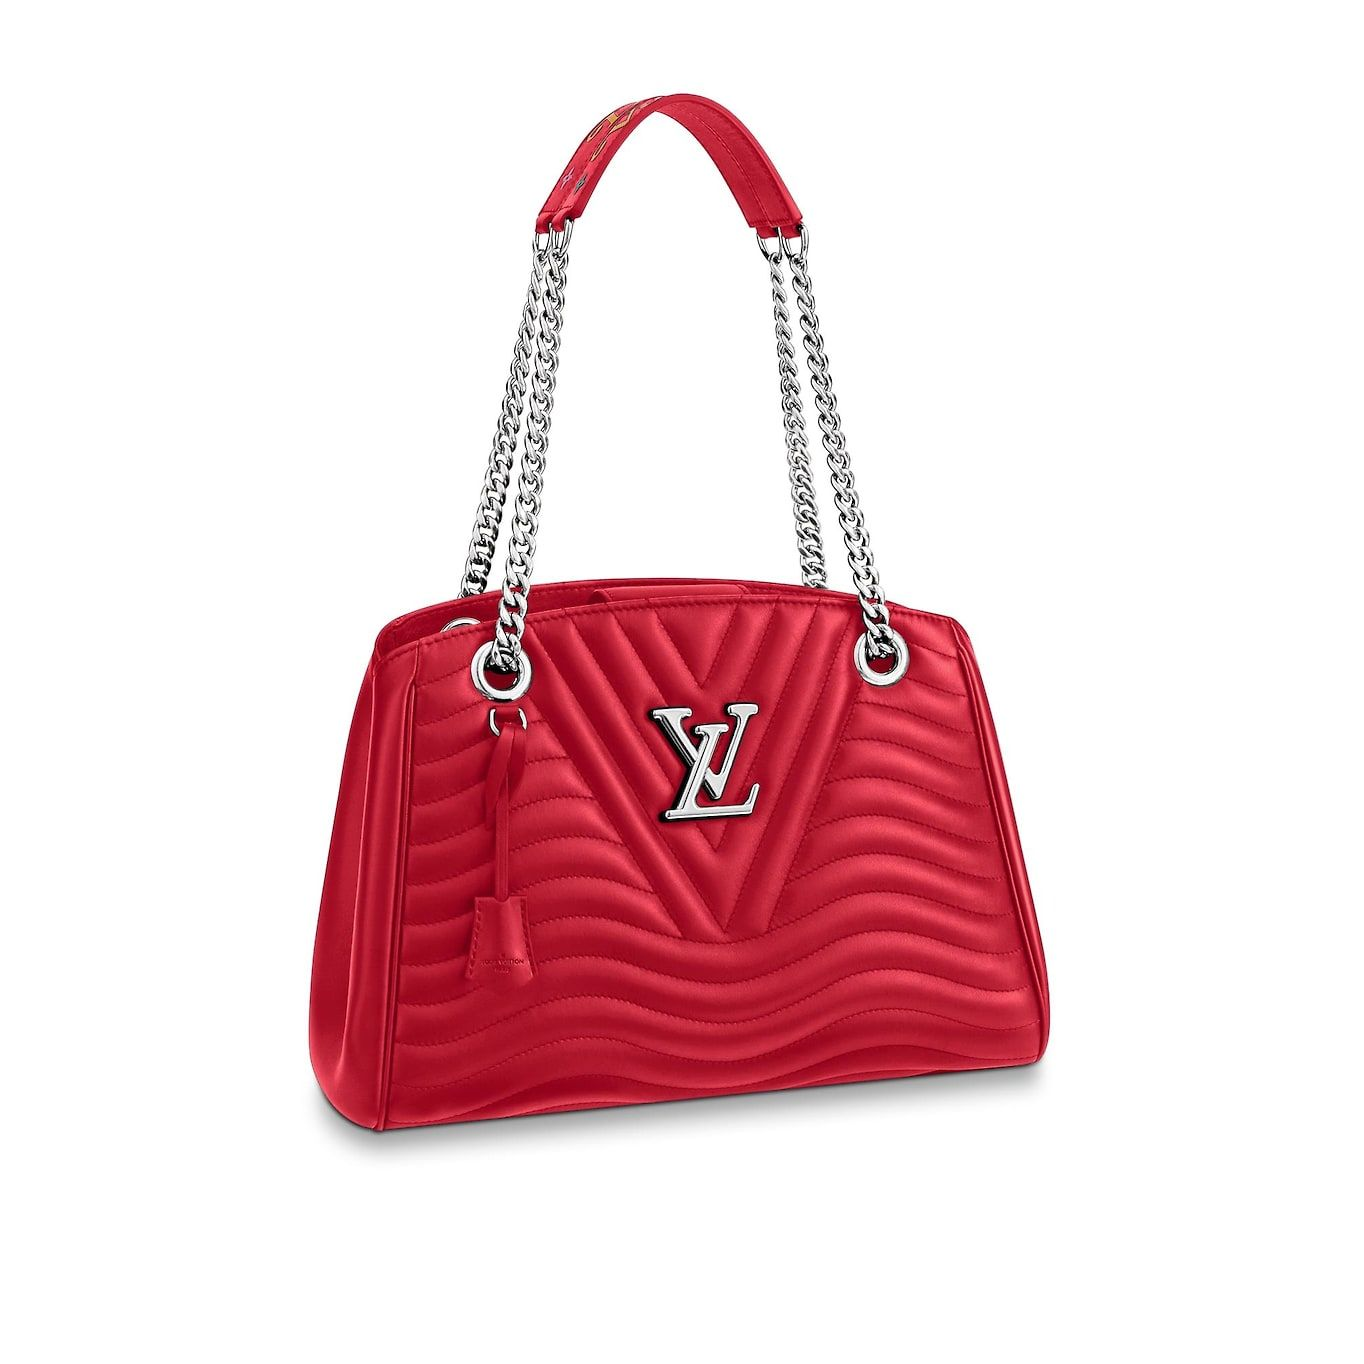 View 1 - Louis Vuitton New Wave Chain Tote LV New Wave Leather in Women s  Handbags Shoulder Bags   Totes collections by Louis Vuitton 2befa89438a9f